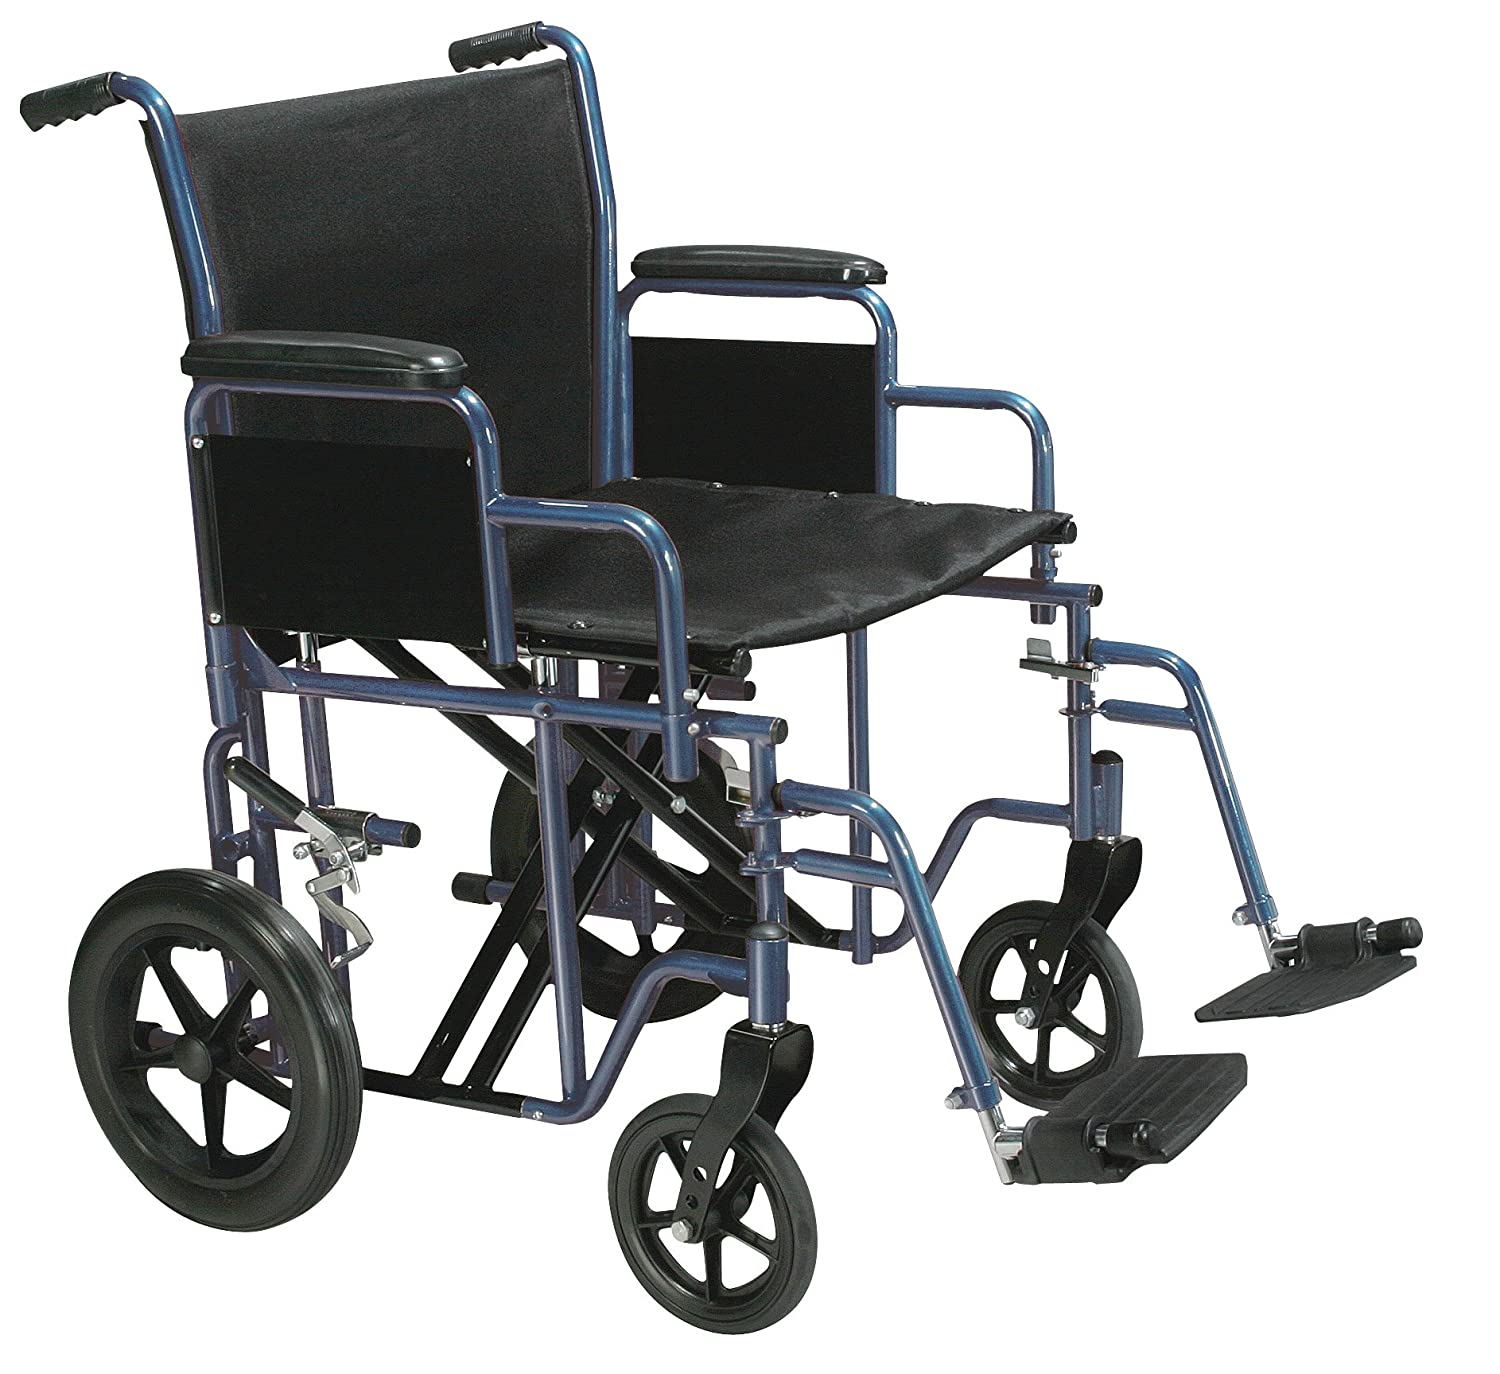 Drive Medical Bariatric Heavy Duty Transport Wheelchair with Swing-Away Footrest, Blue, 22 Inch